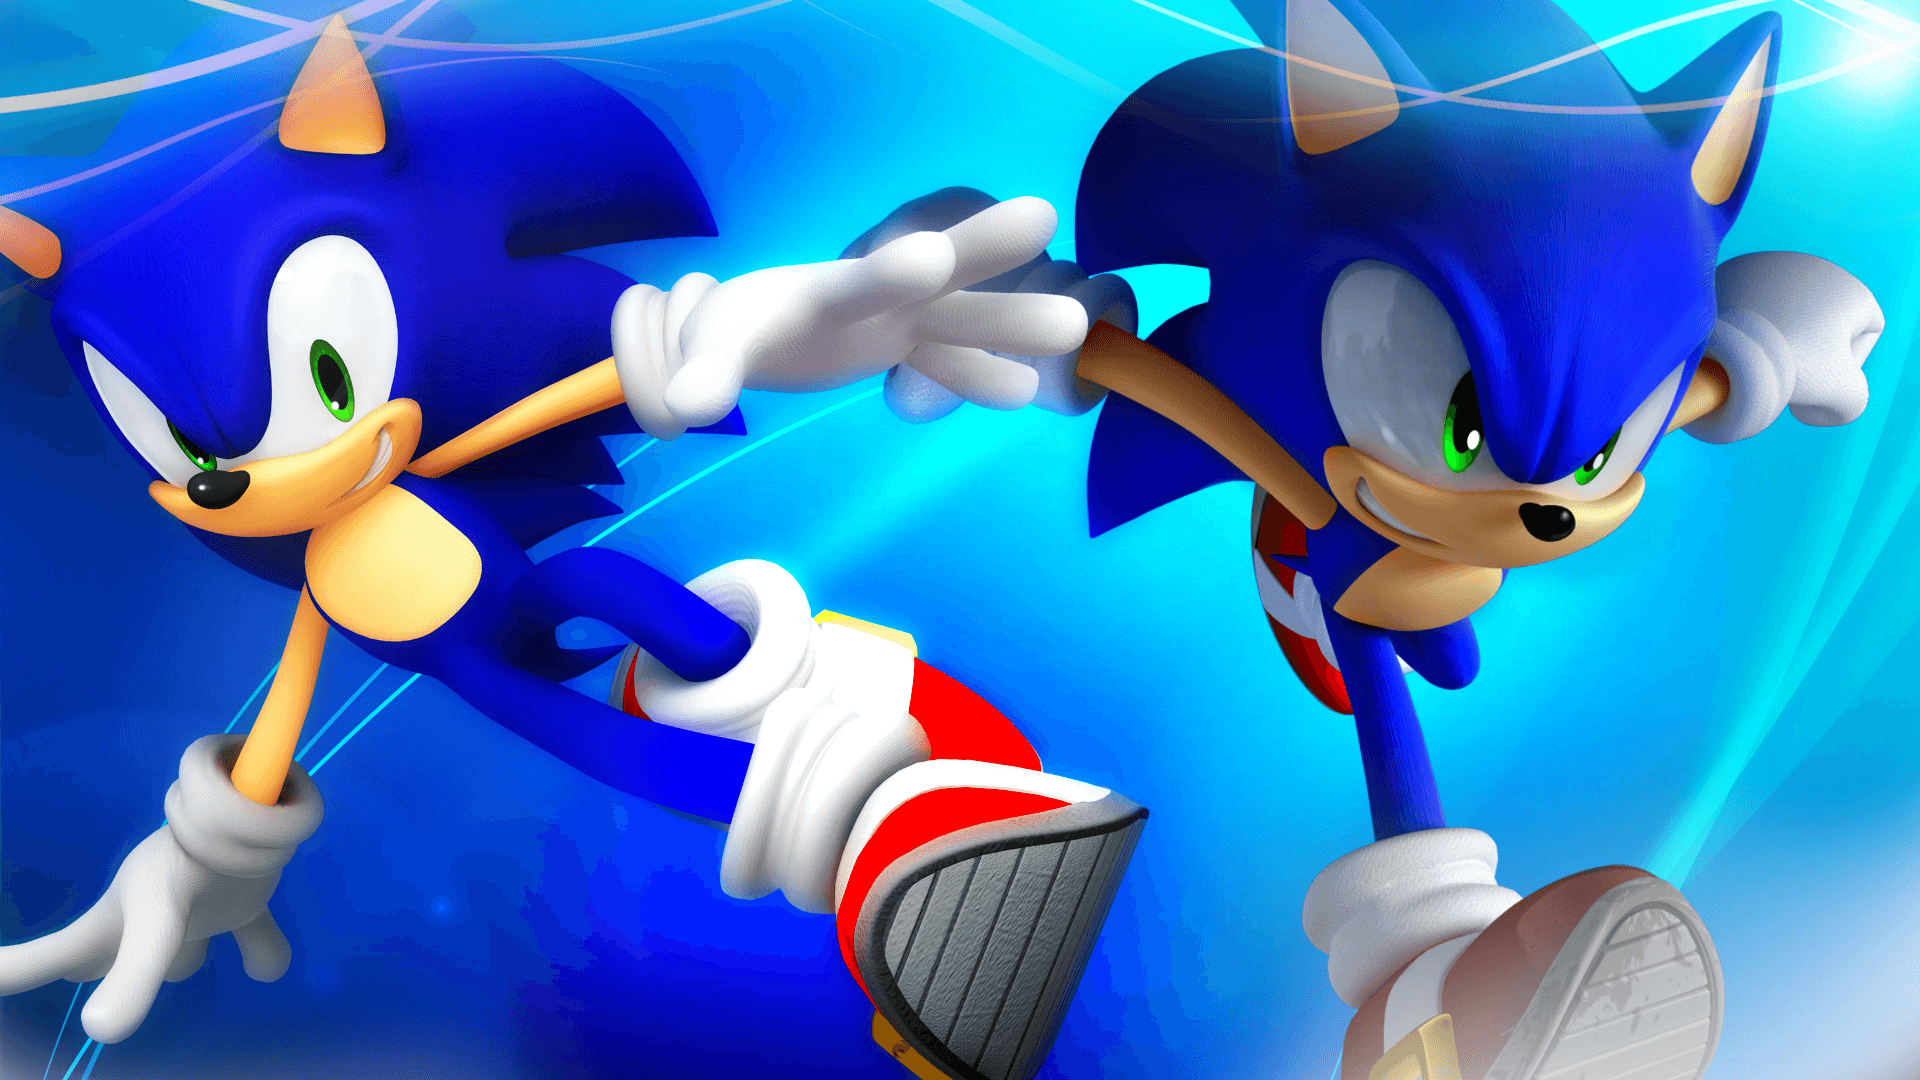 sonic the hedgehog wallpapers 2016 wallpaper cave